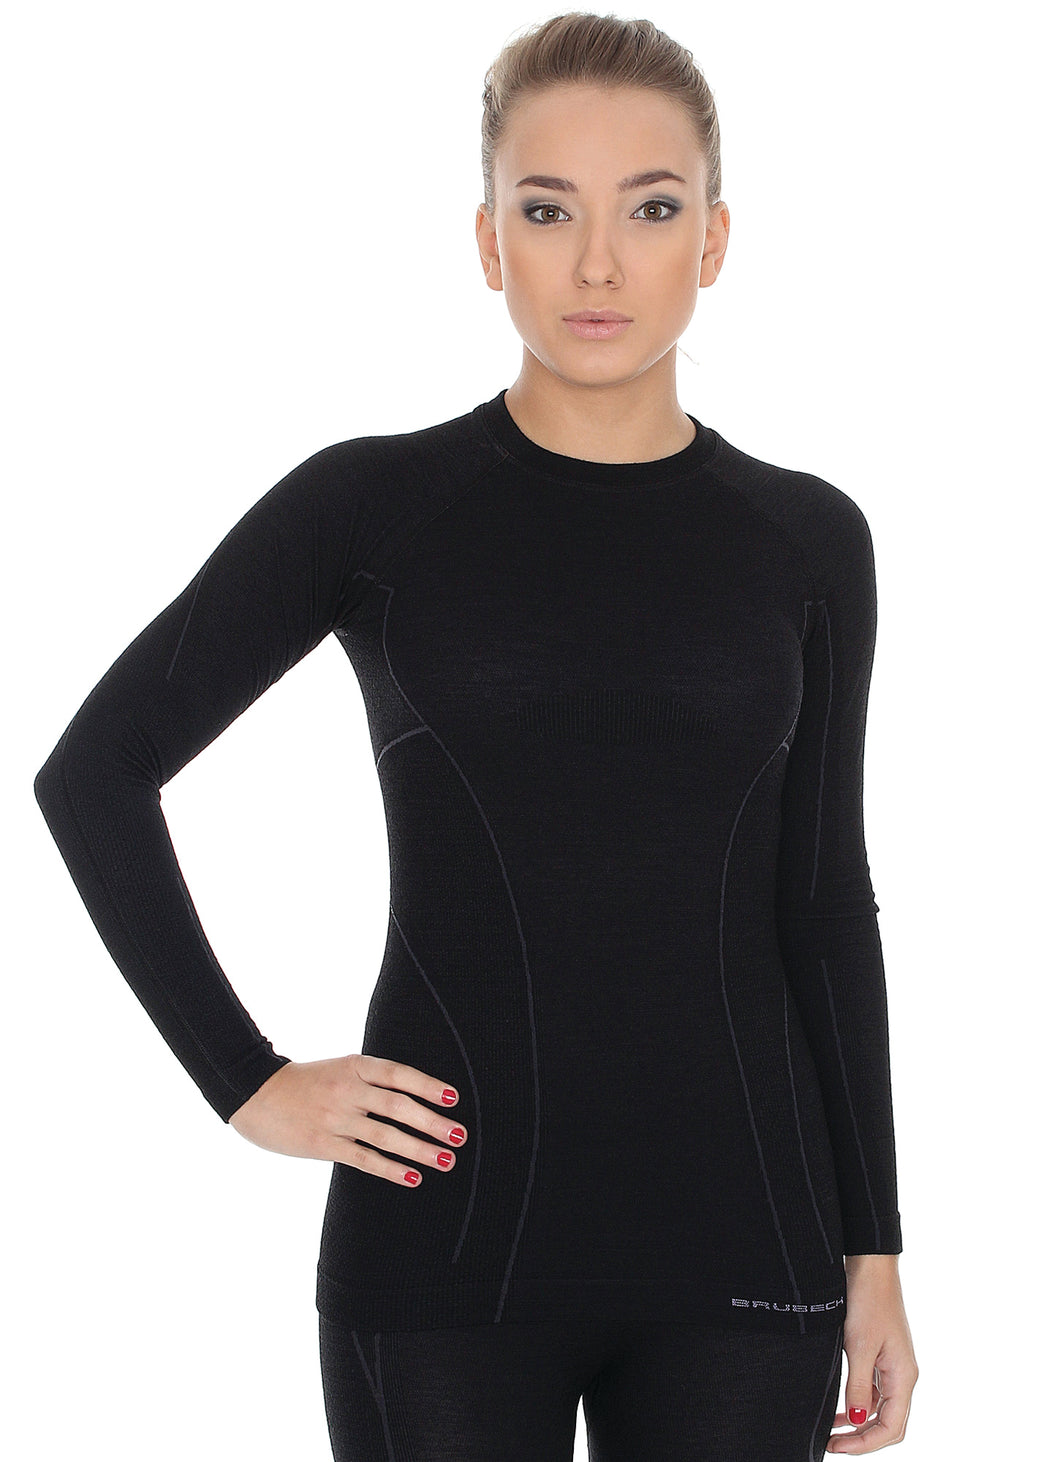 Women's Top ACTIVE WOOL Long Sleeve Black